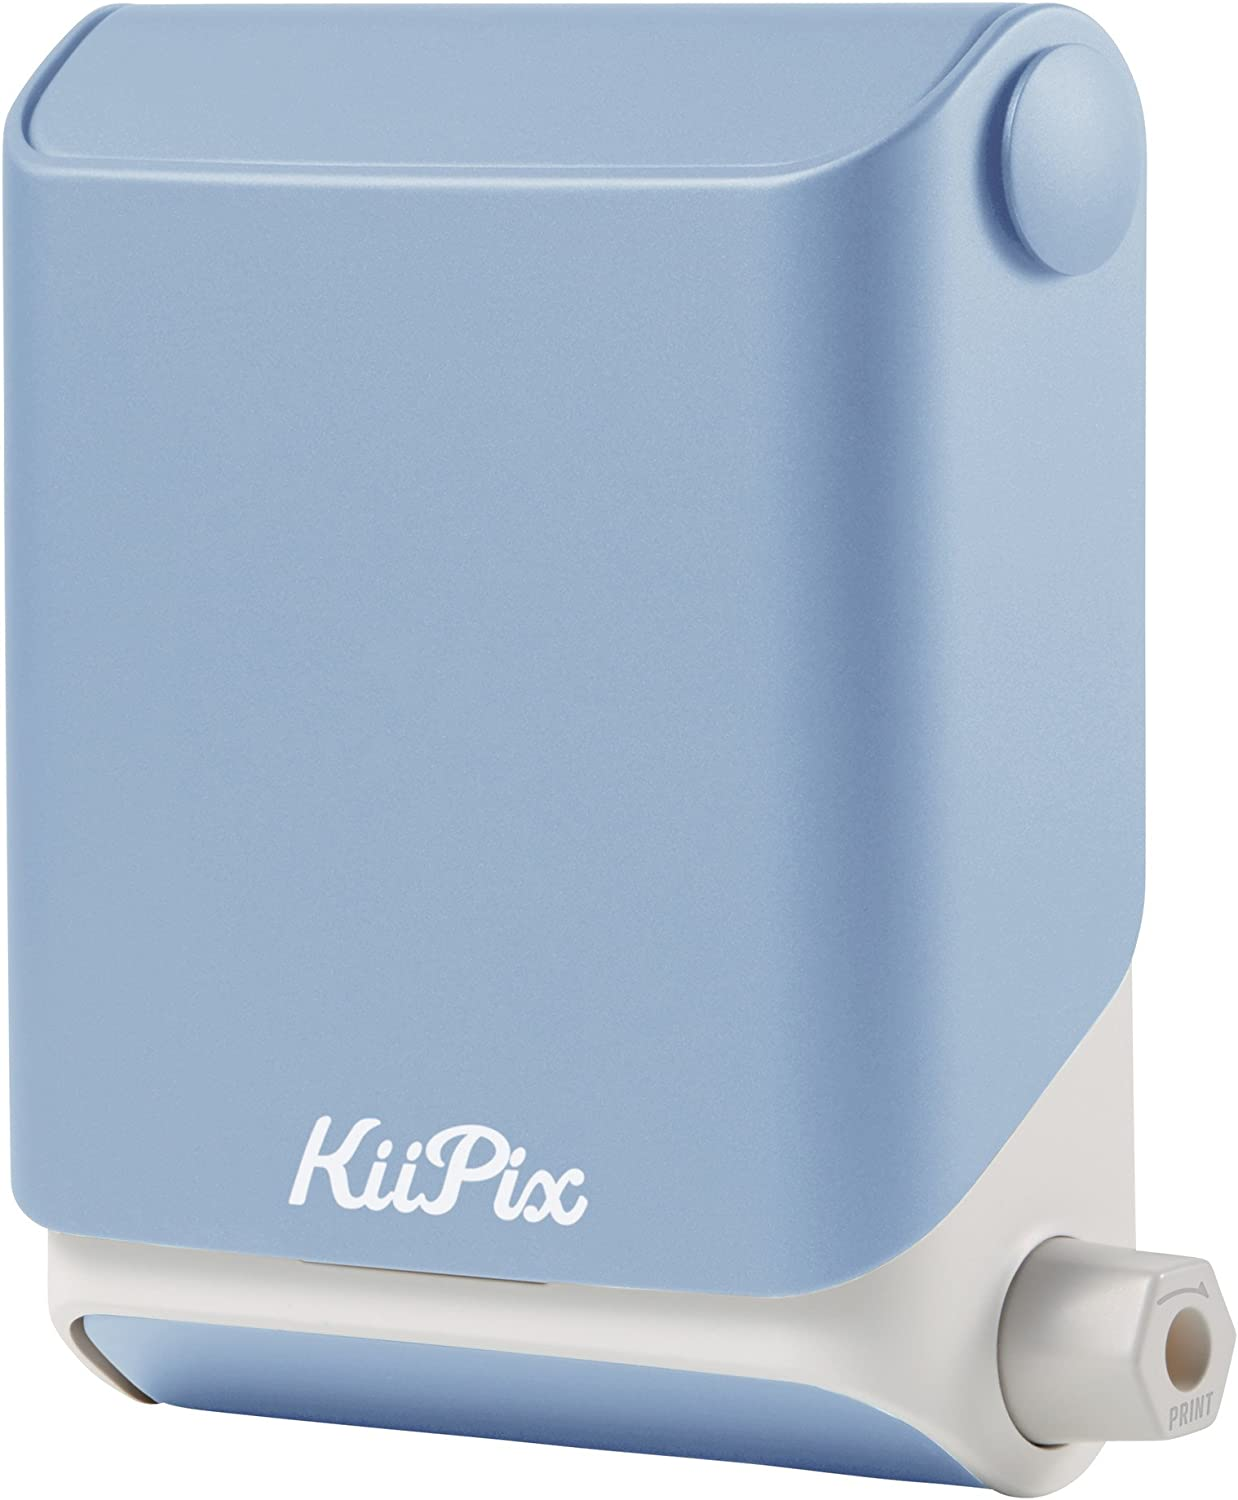 KiiPix Smartphone Picture Printer, Blue | Instantly Print Fun, Retro-Style Photos Right from Smartphone Screen | Portable | No Batteries Required | ...